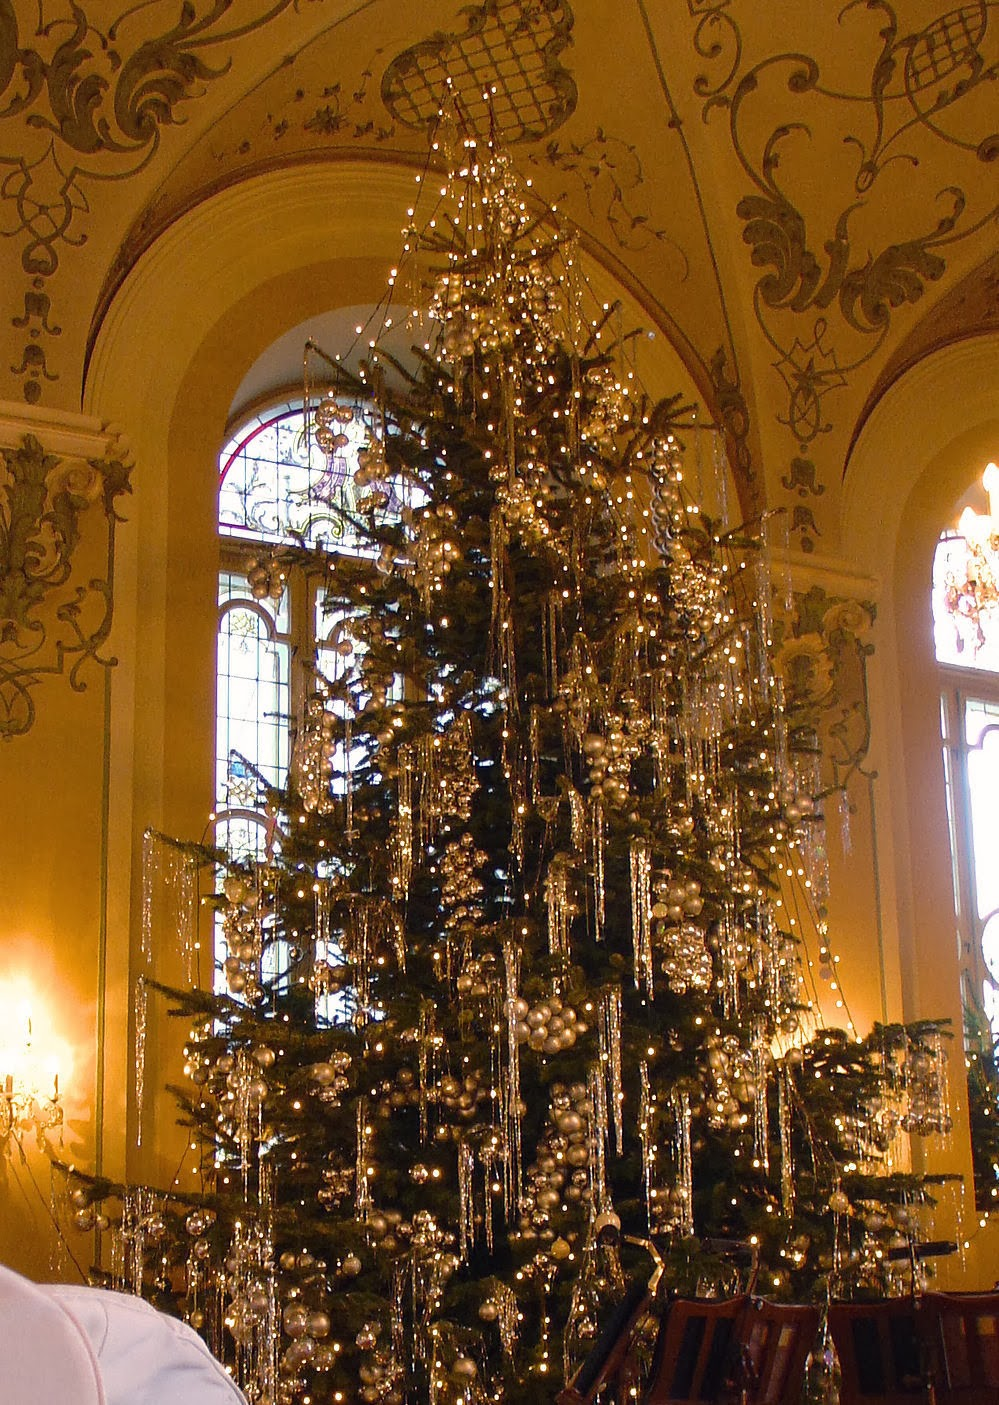 But the piece de resistance was this stunning Christmas tree in Saint Peter's grand ballroom.